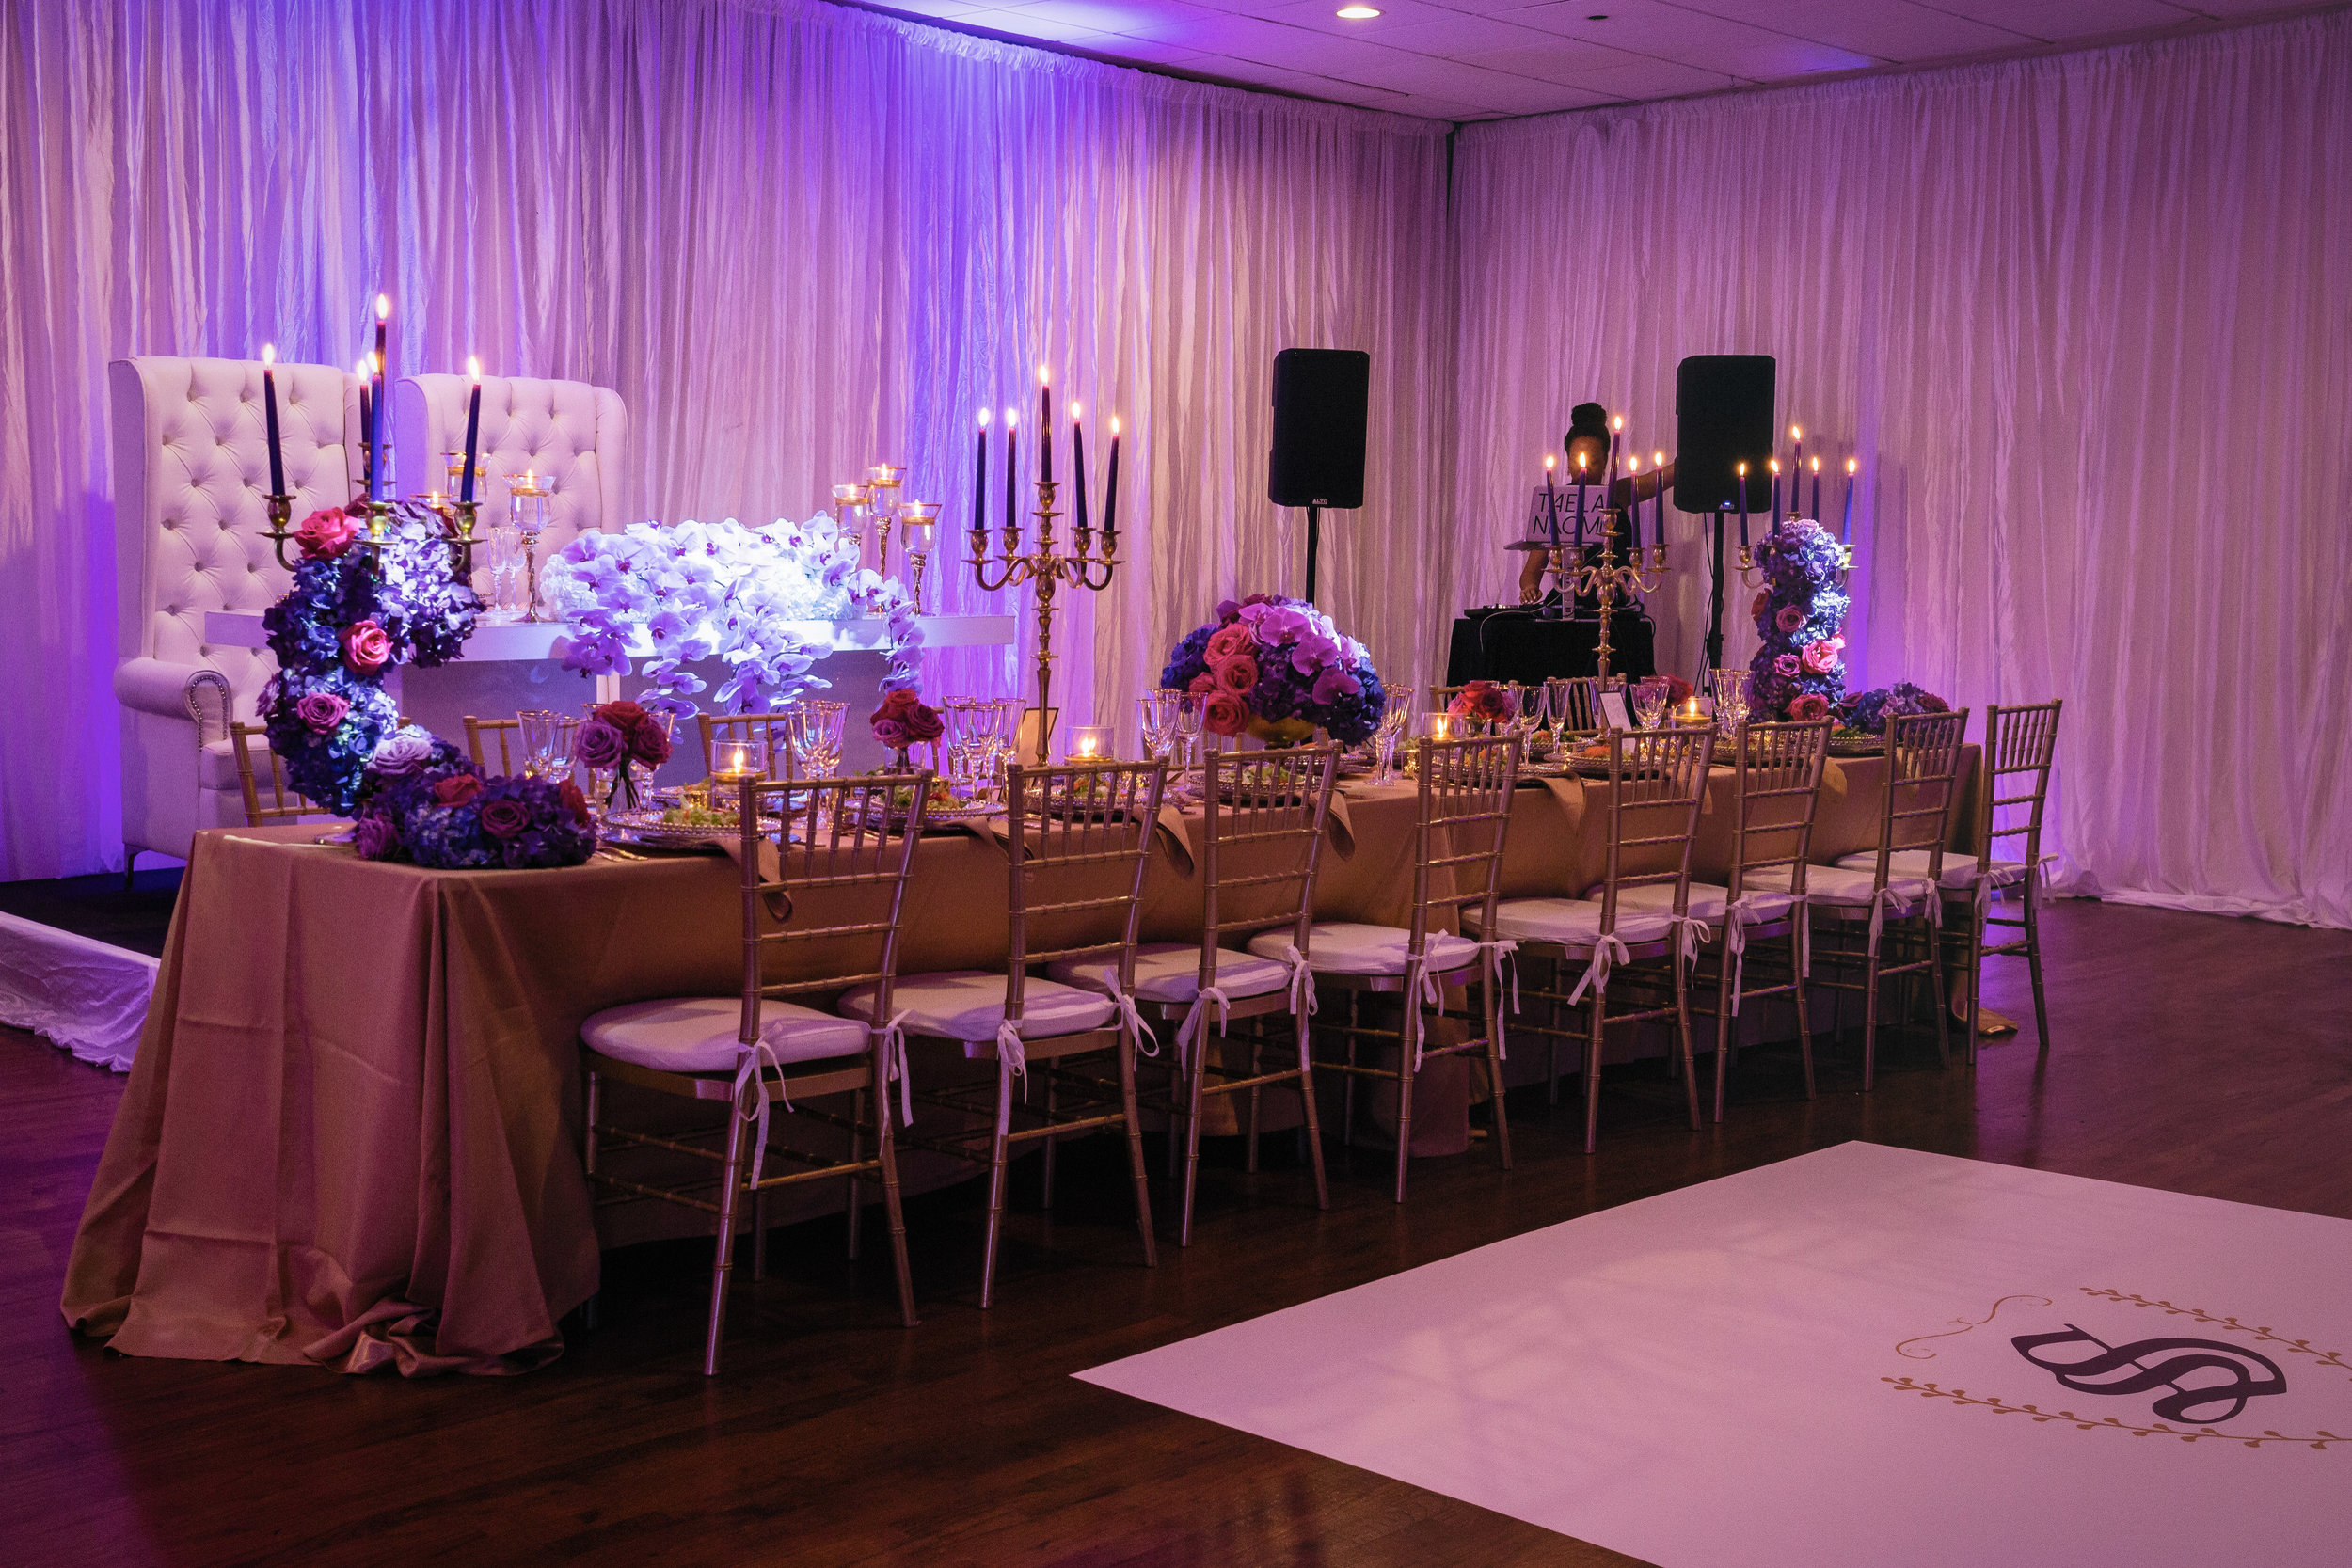 Brooklyn Loft-Wedding-Estate Table-Sweetheart Table.jpg